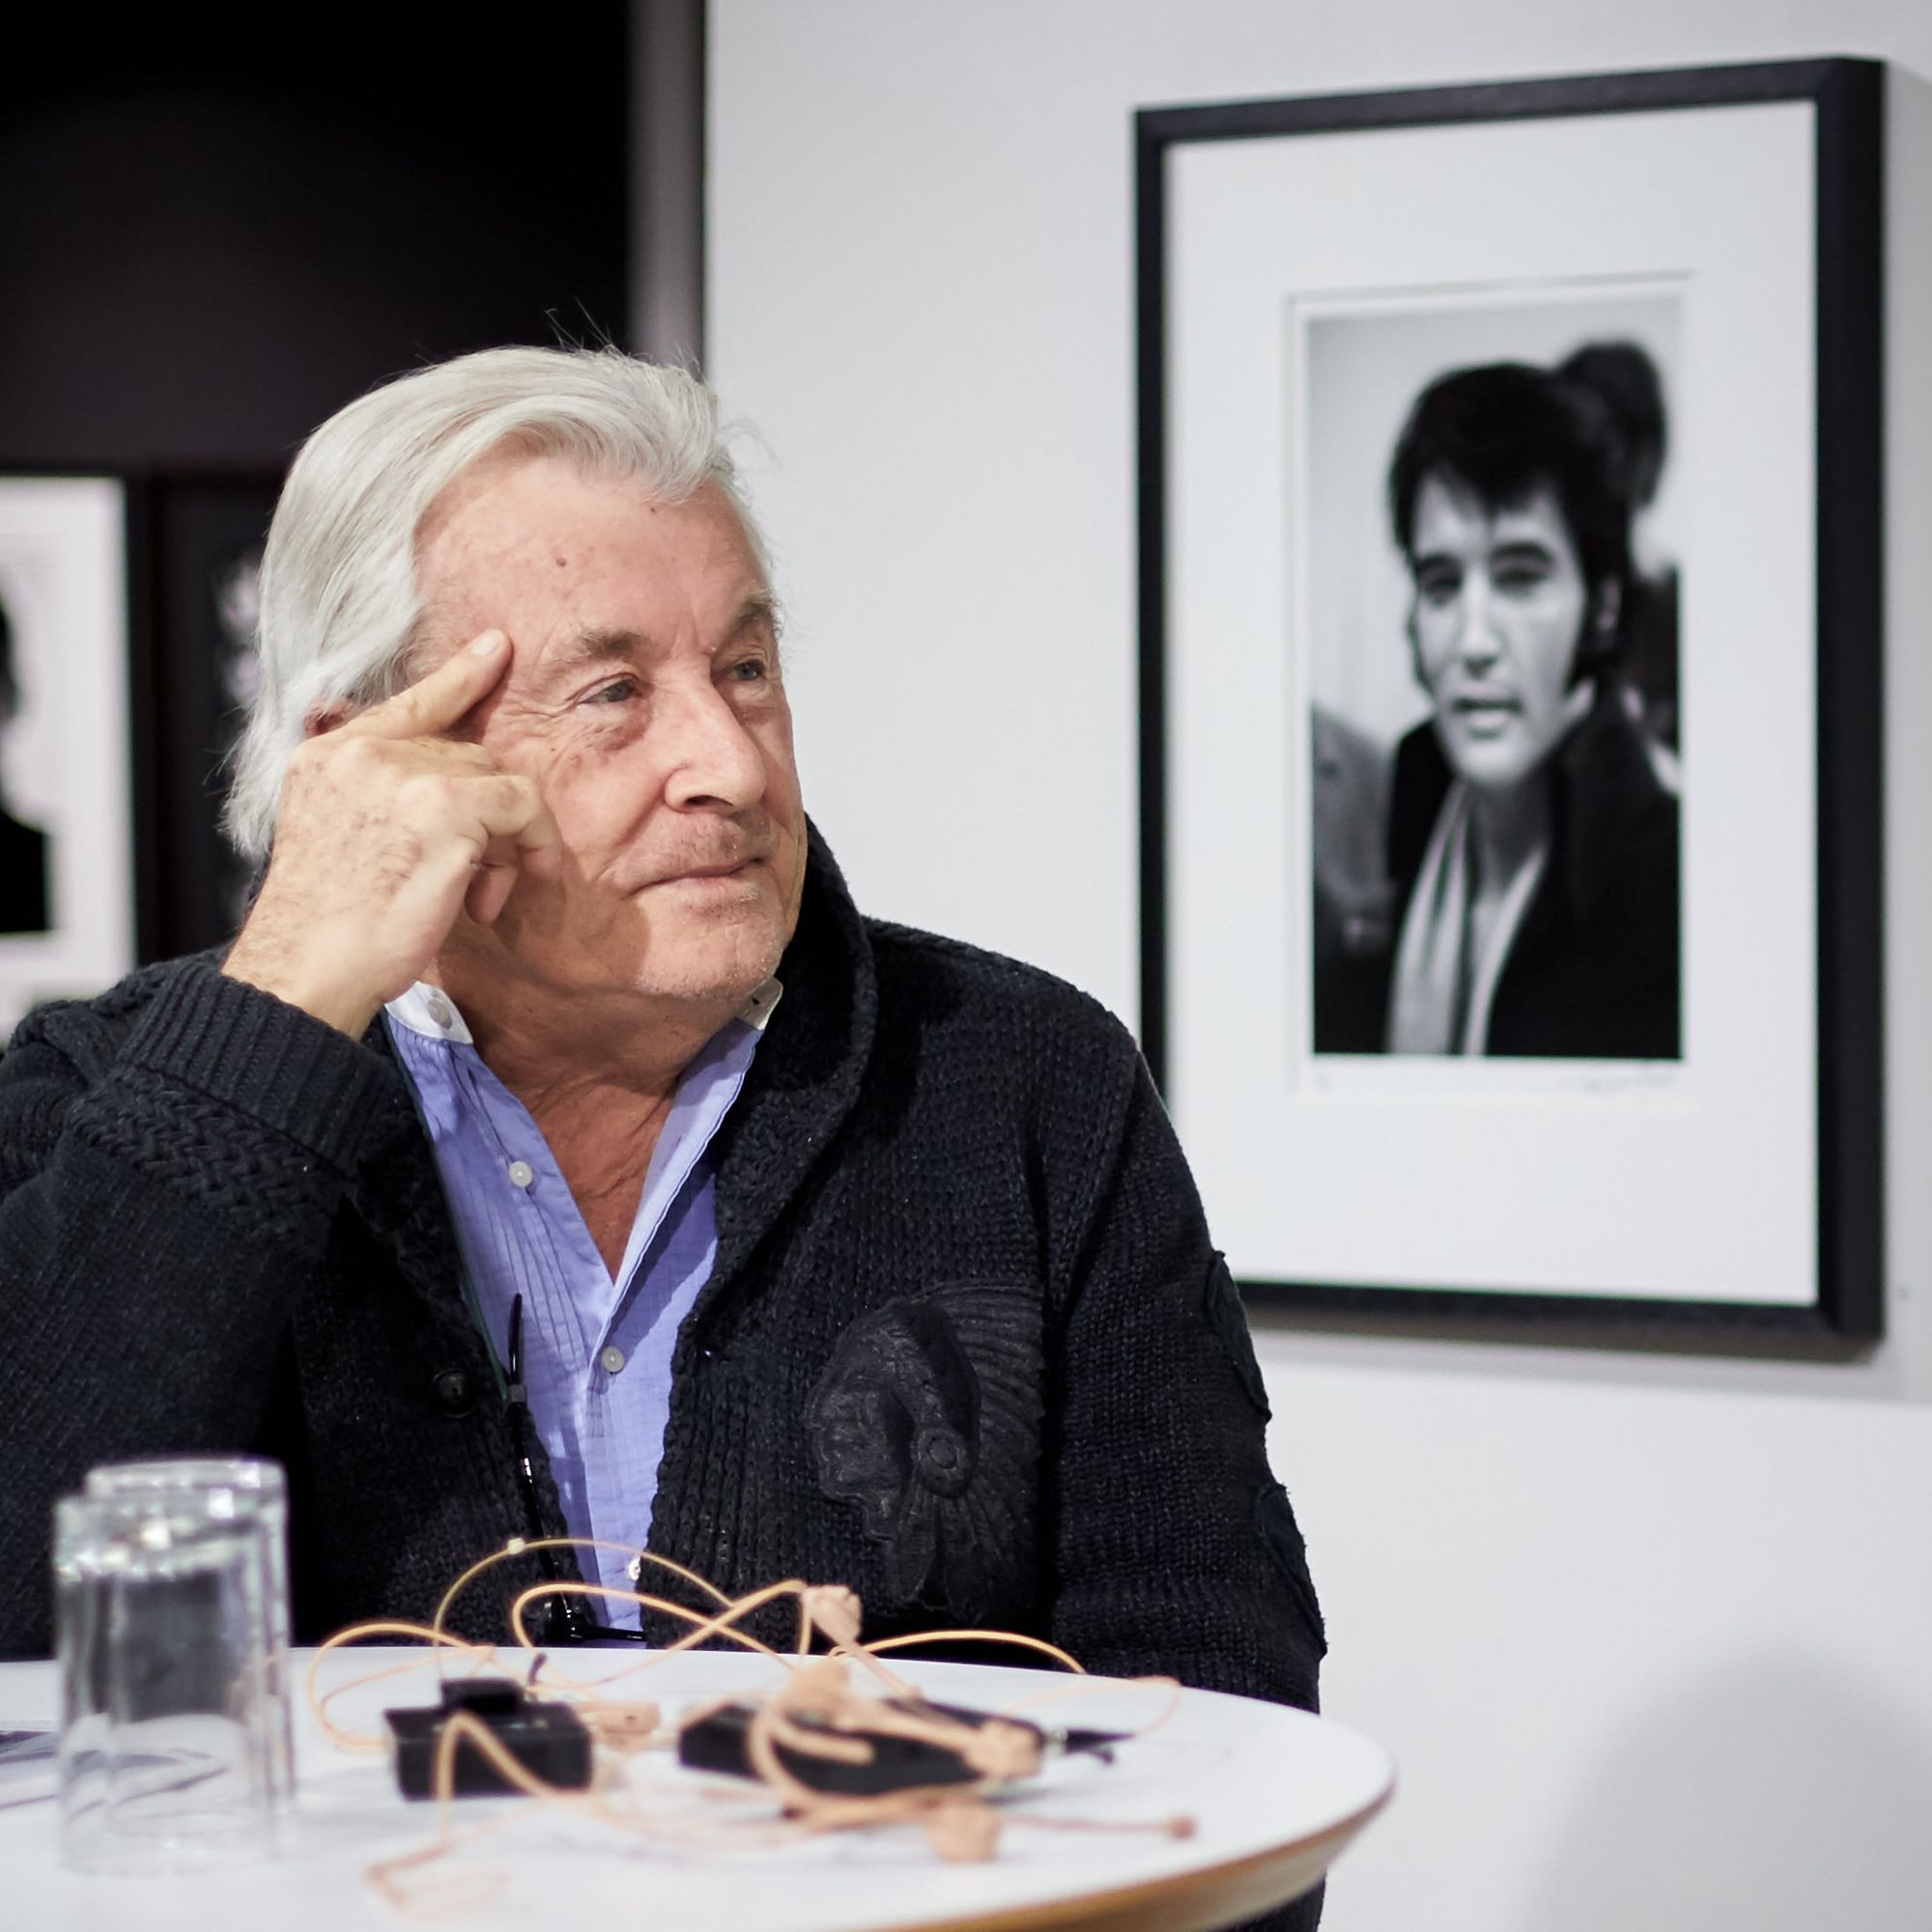 Terry O'Neill at the Oslo Exhibition